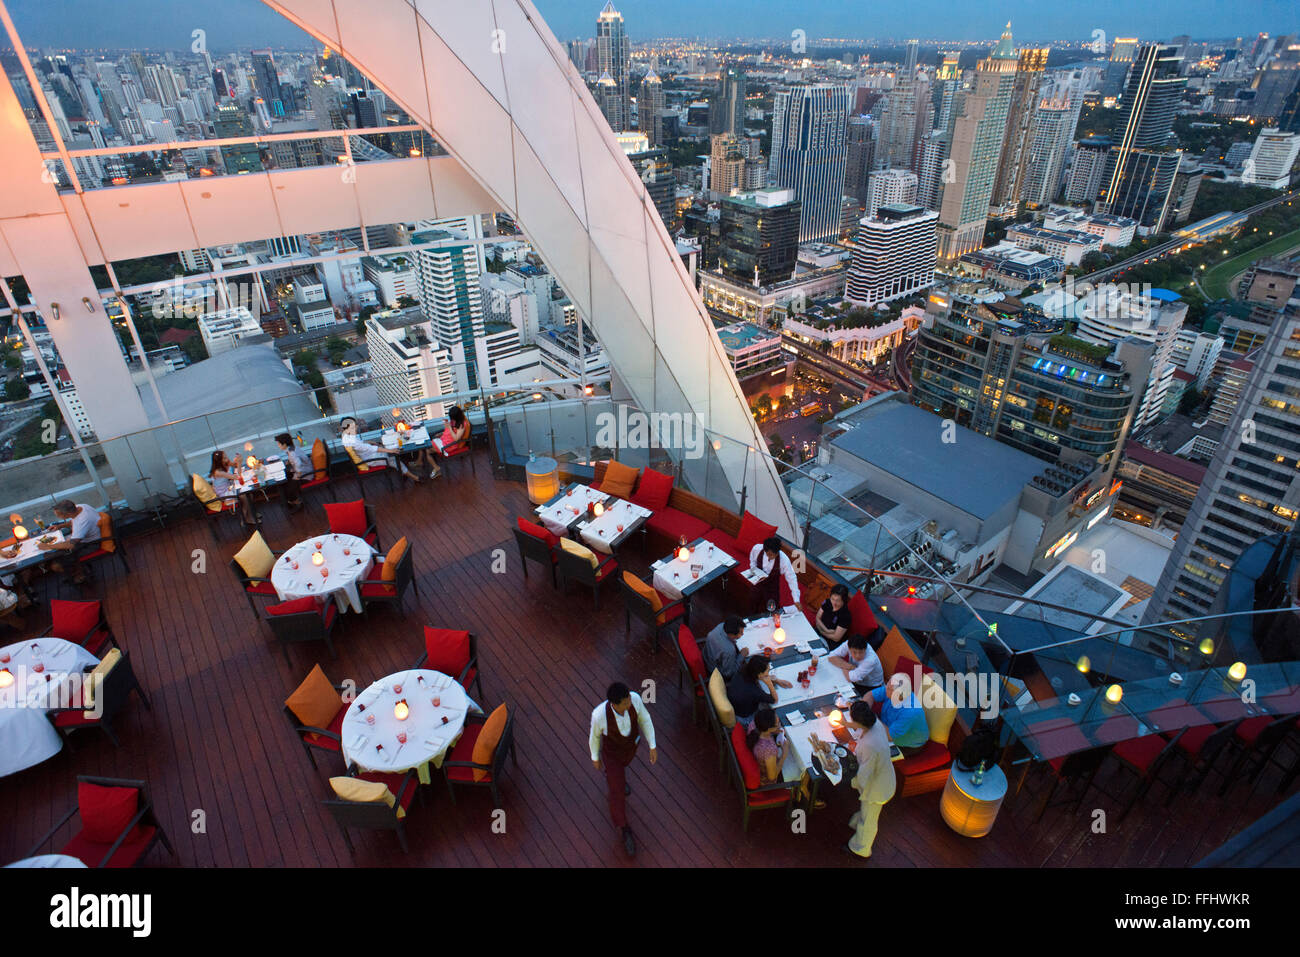 Red Sky Restaurant Rooftop. Bangkok. Thailand. On the top floor of the Centara Grand skyscraper in the city centre. - Stock Image